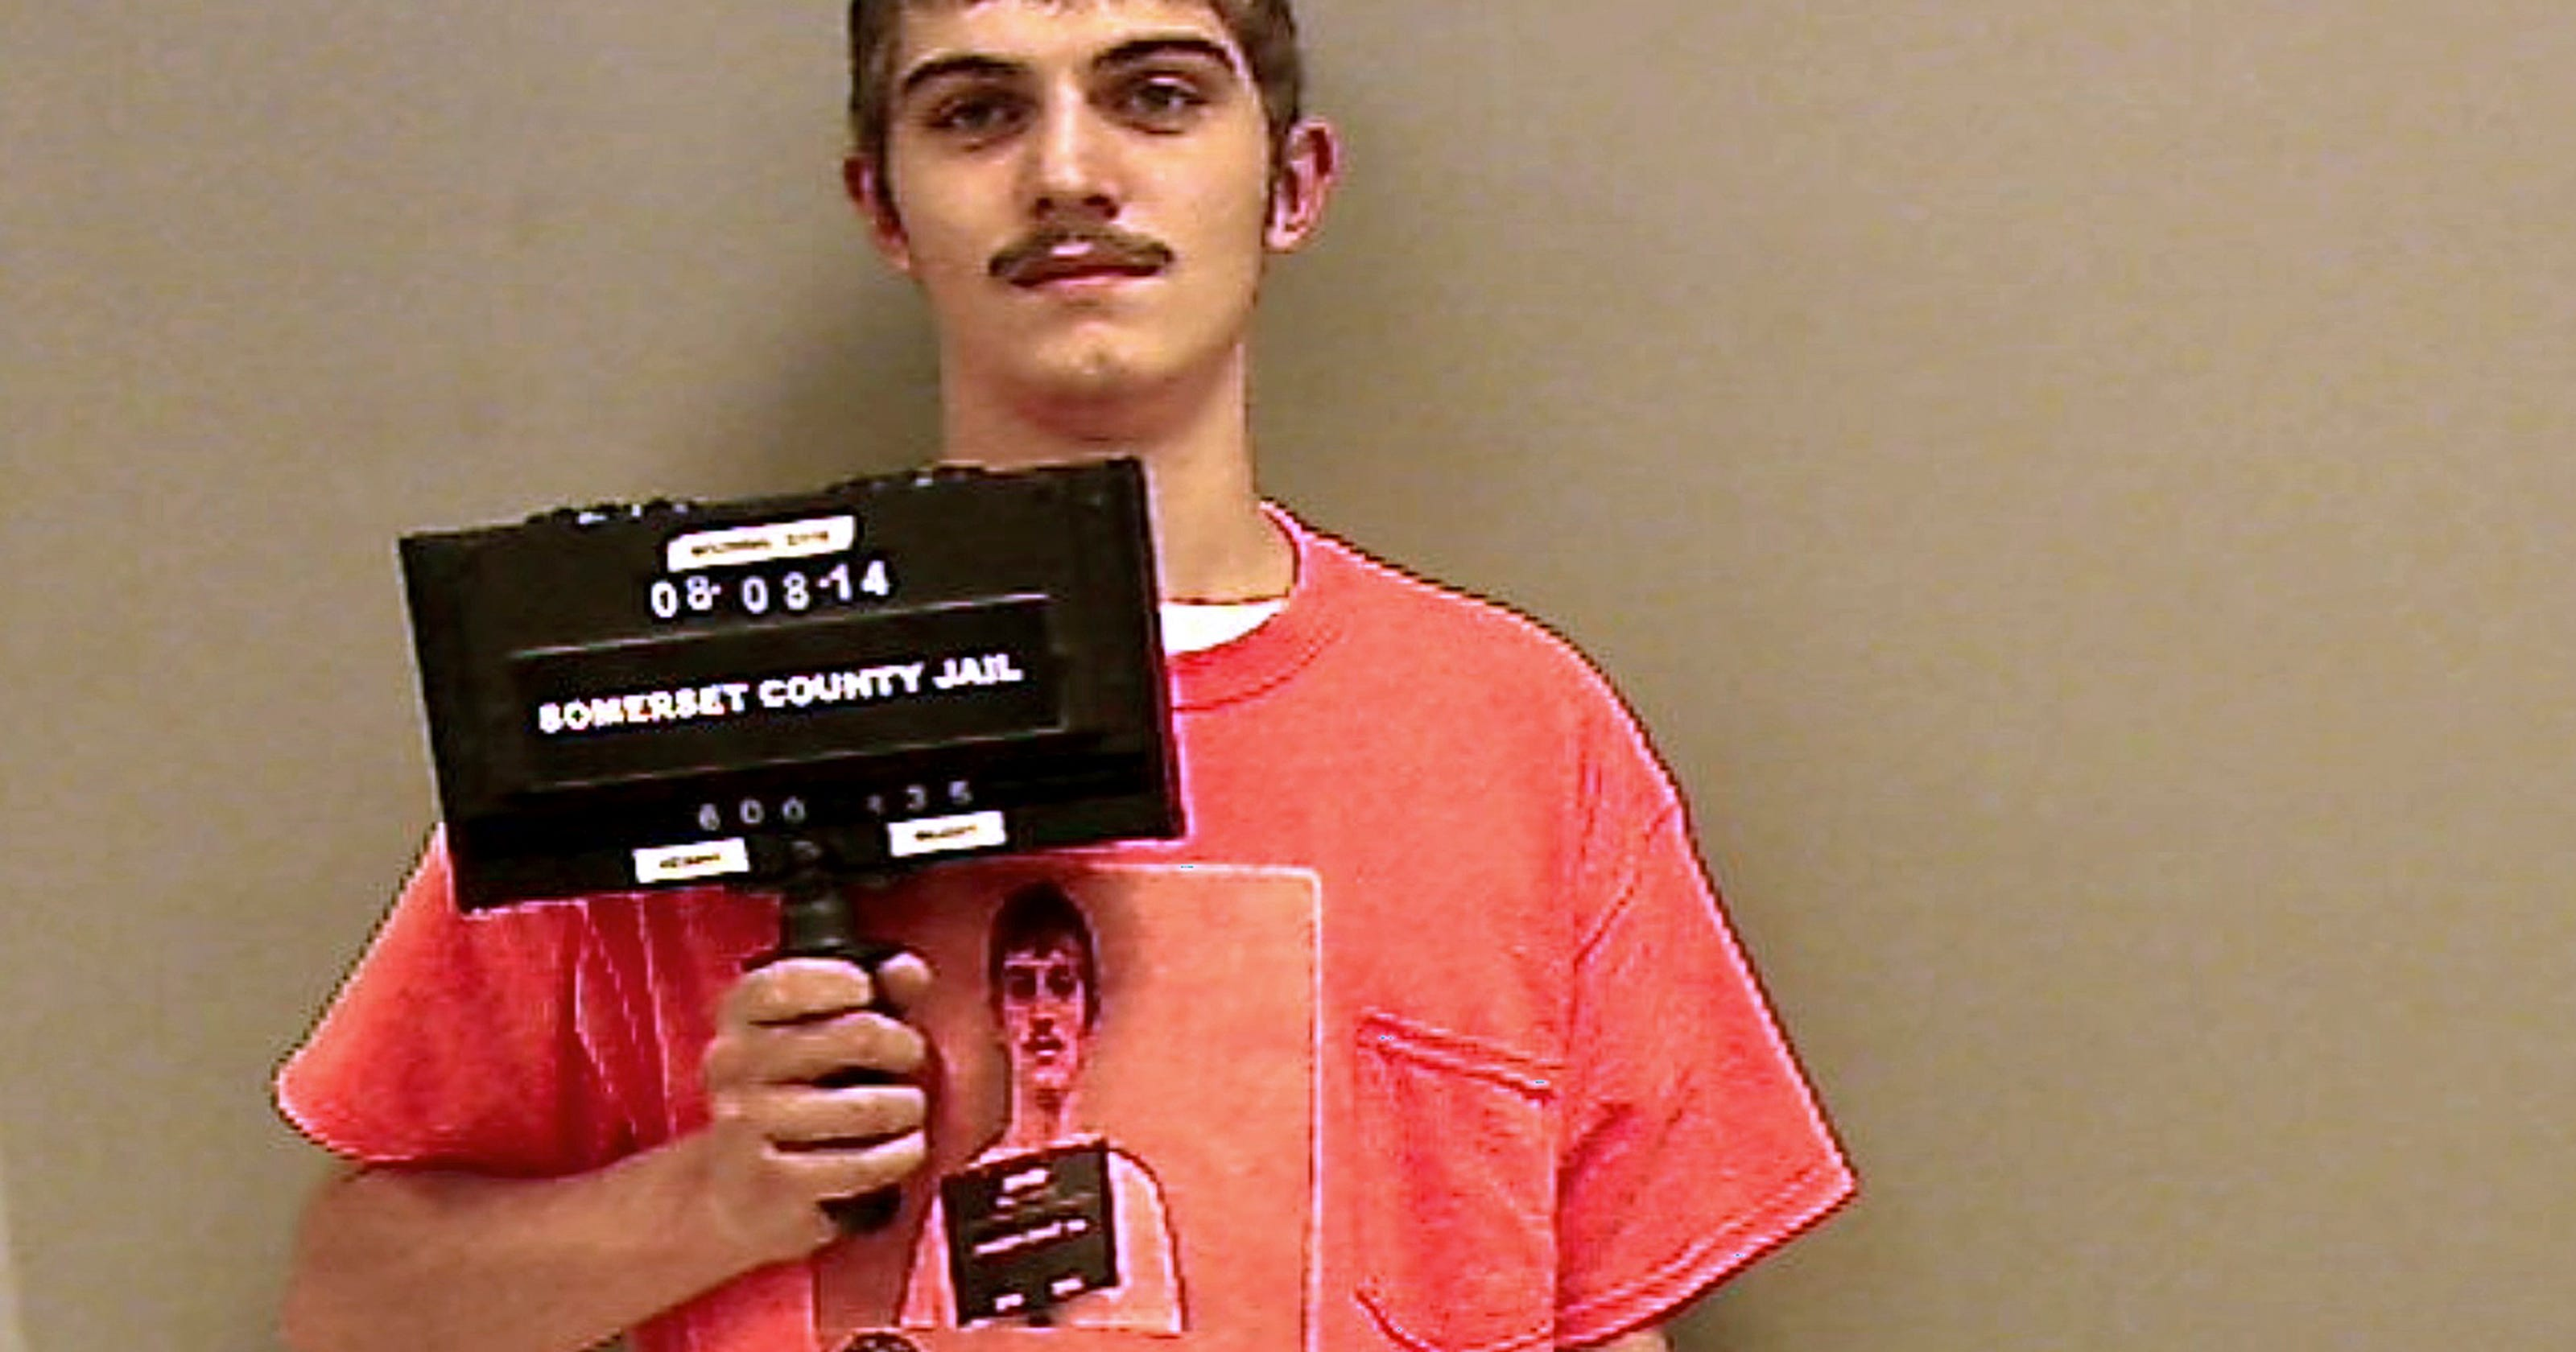 Meta mug: Man wears mug shot shirt for jail booking photo